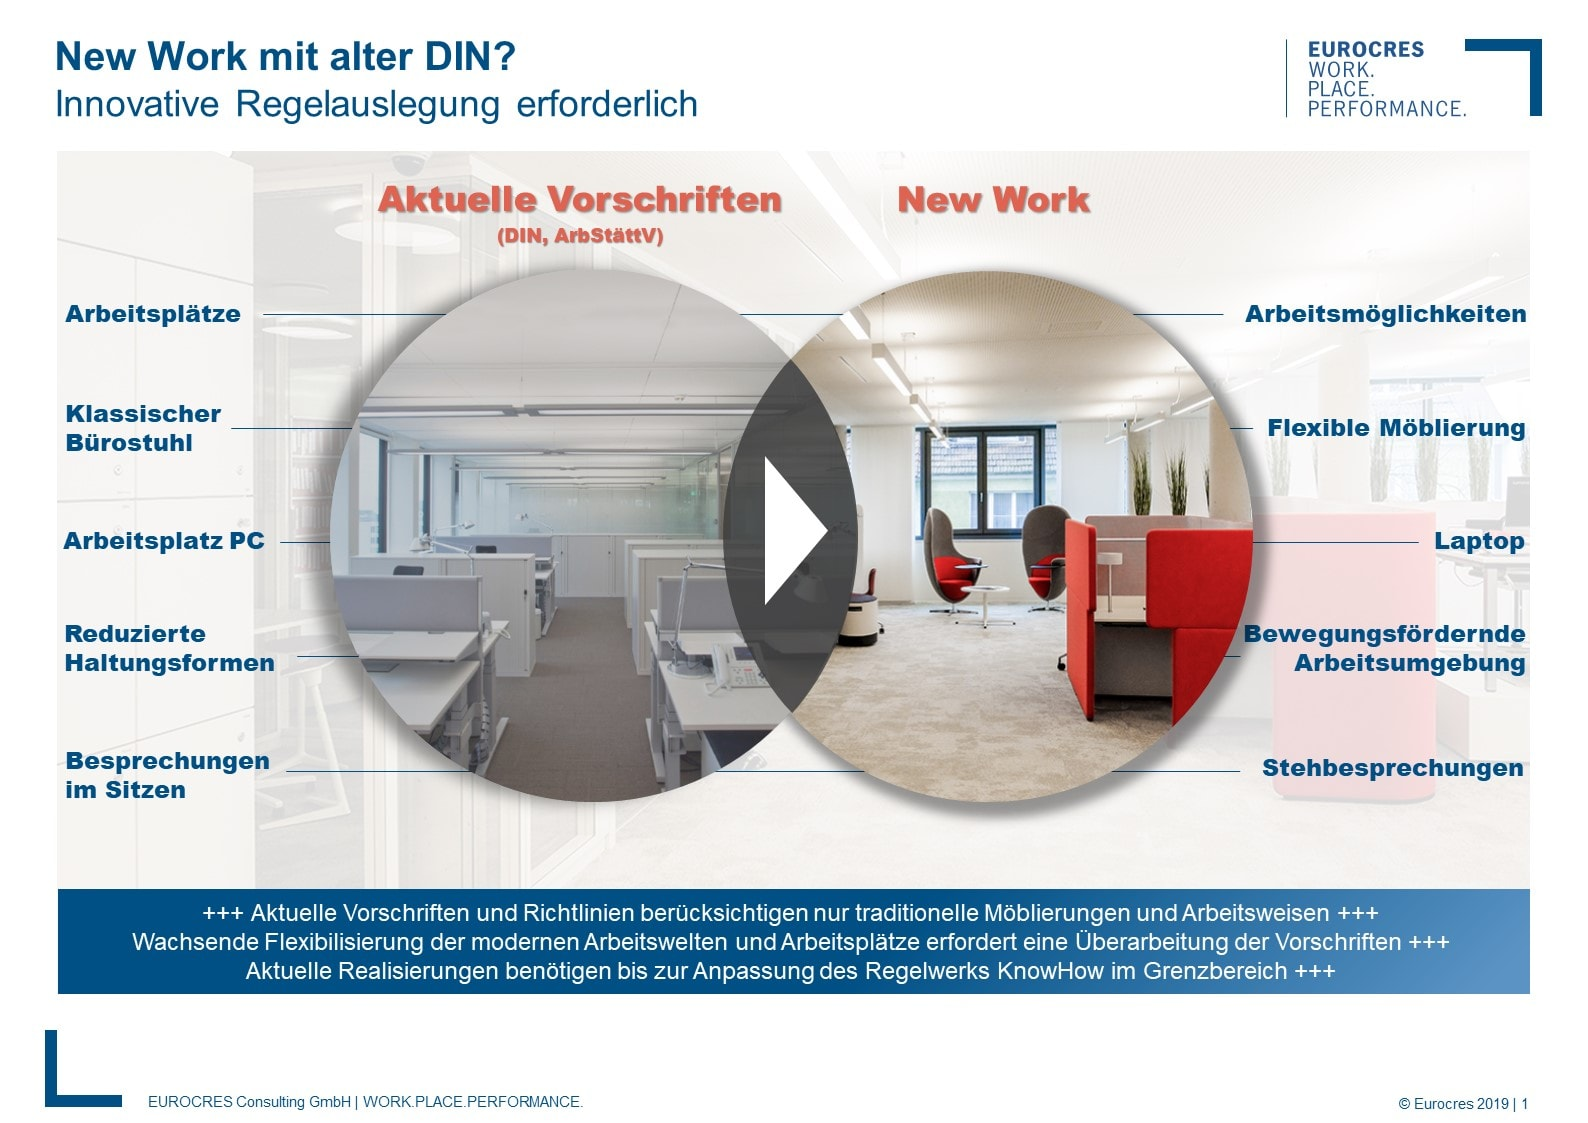 WorkPlace Flash: New Work mit alter DIN